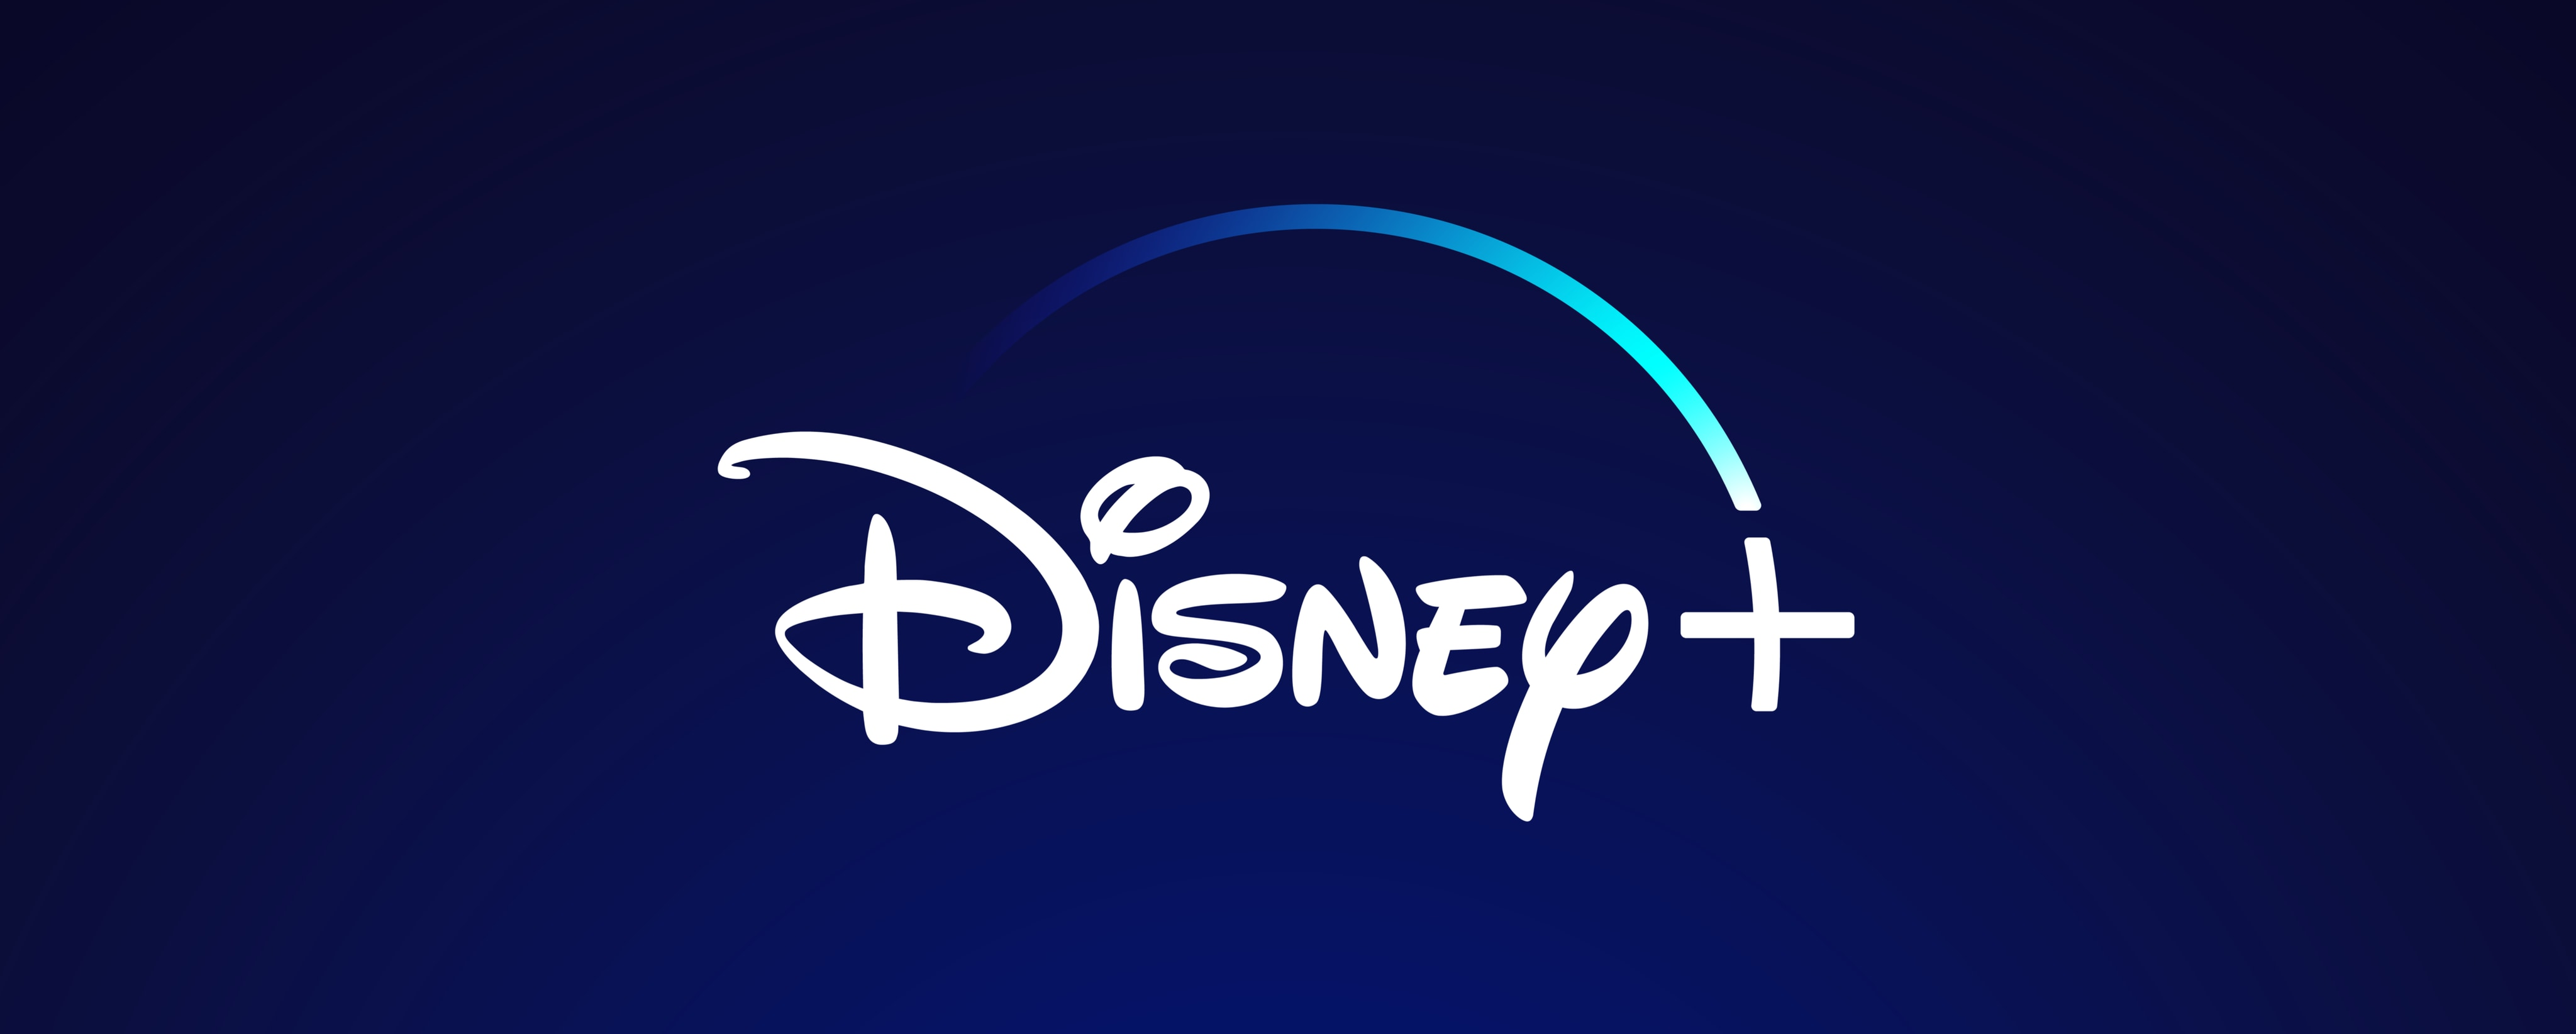 Disney+ sets 15th September as launch date for eight more European countries